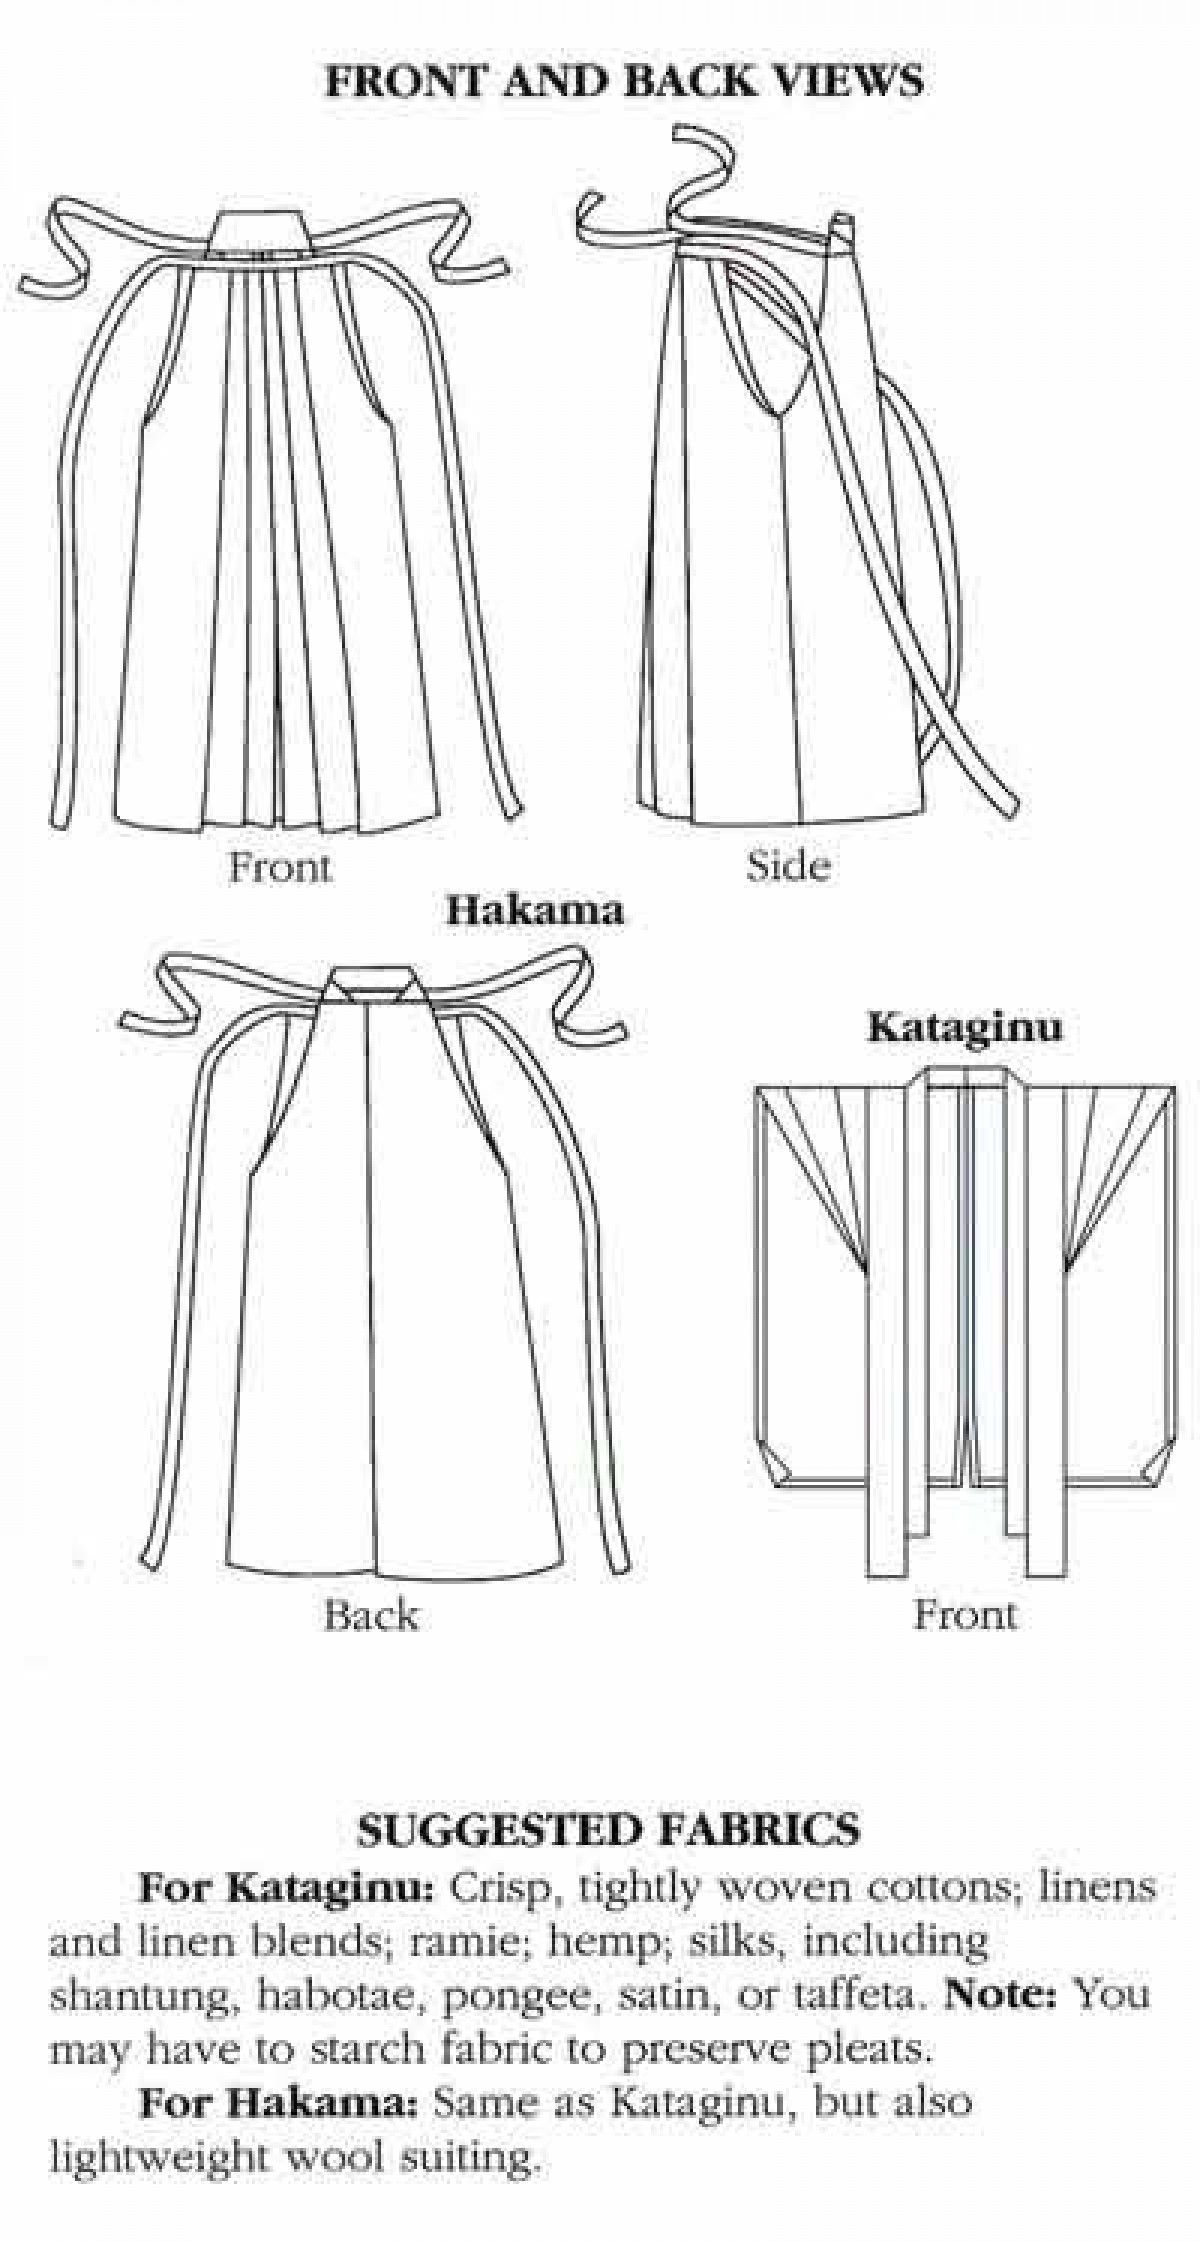 folkwear japanese hakama and kataginu pattern 151 sca pinterest technische zeichnung. Black Bedroom Furniture Sets. Home Design Ideas